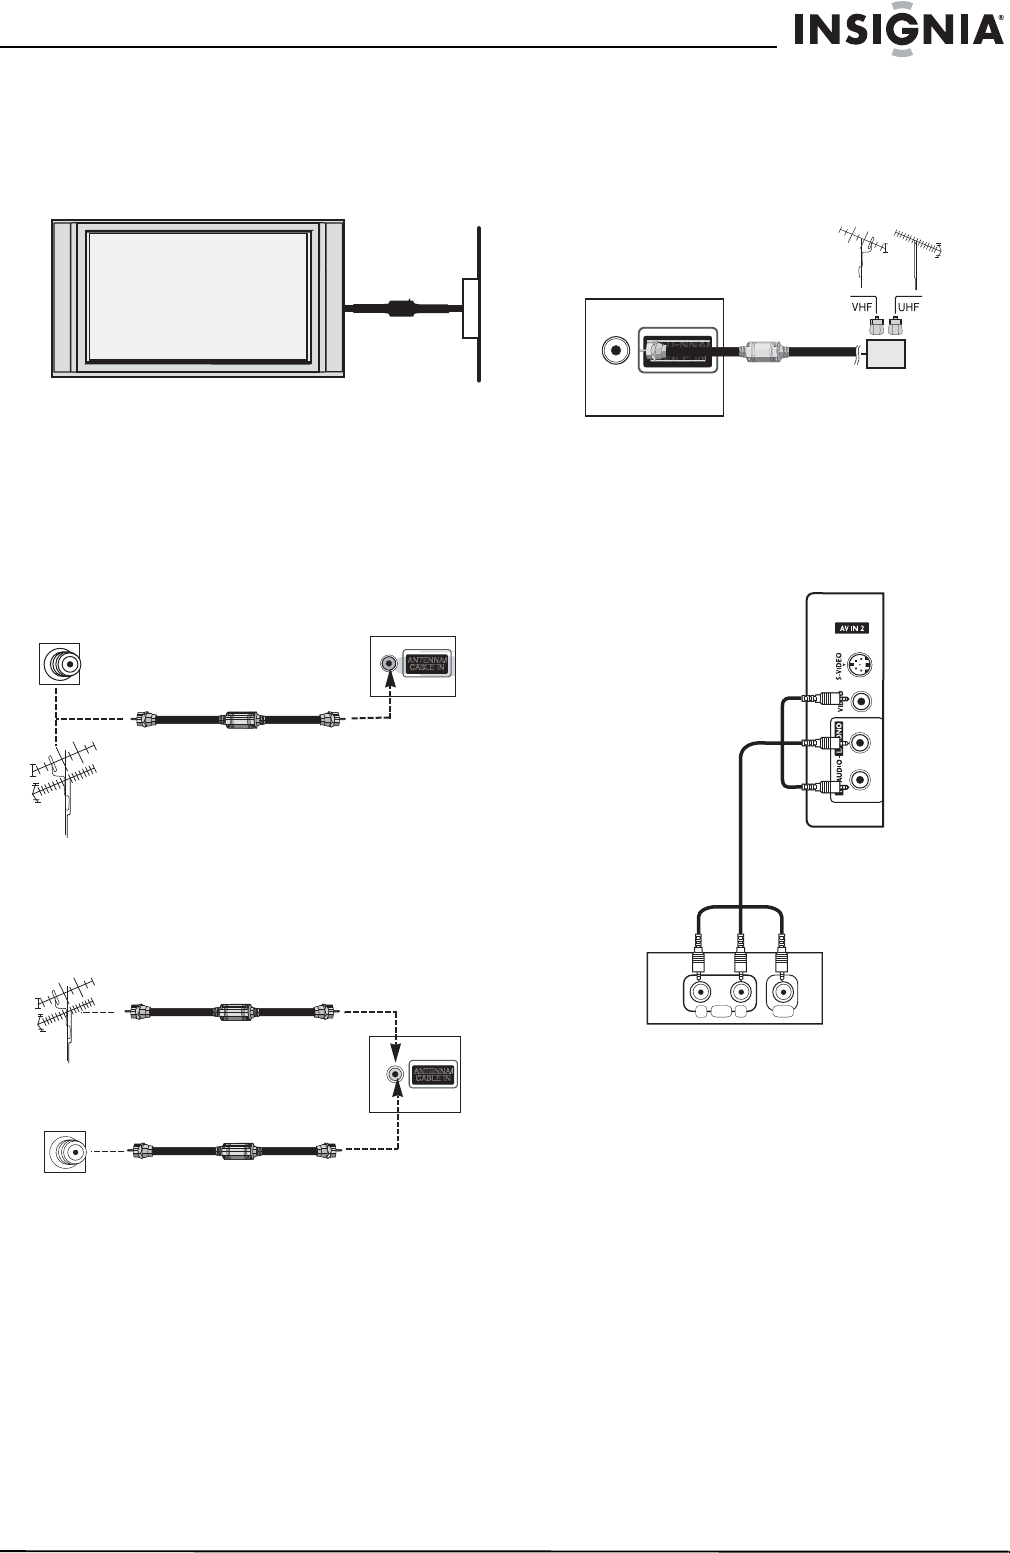 Page 9 of Insignia Flat Panel Television NS-PDP42 User